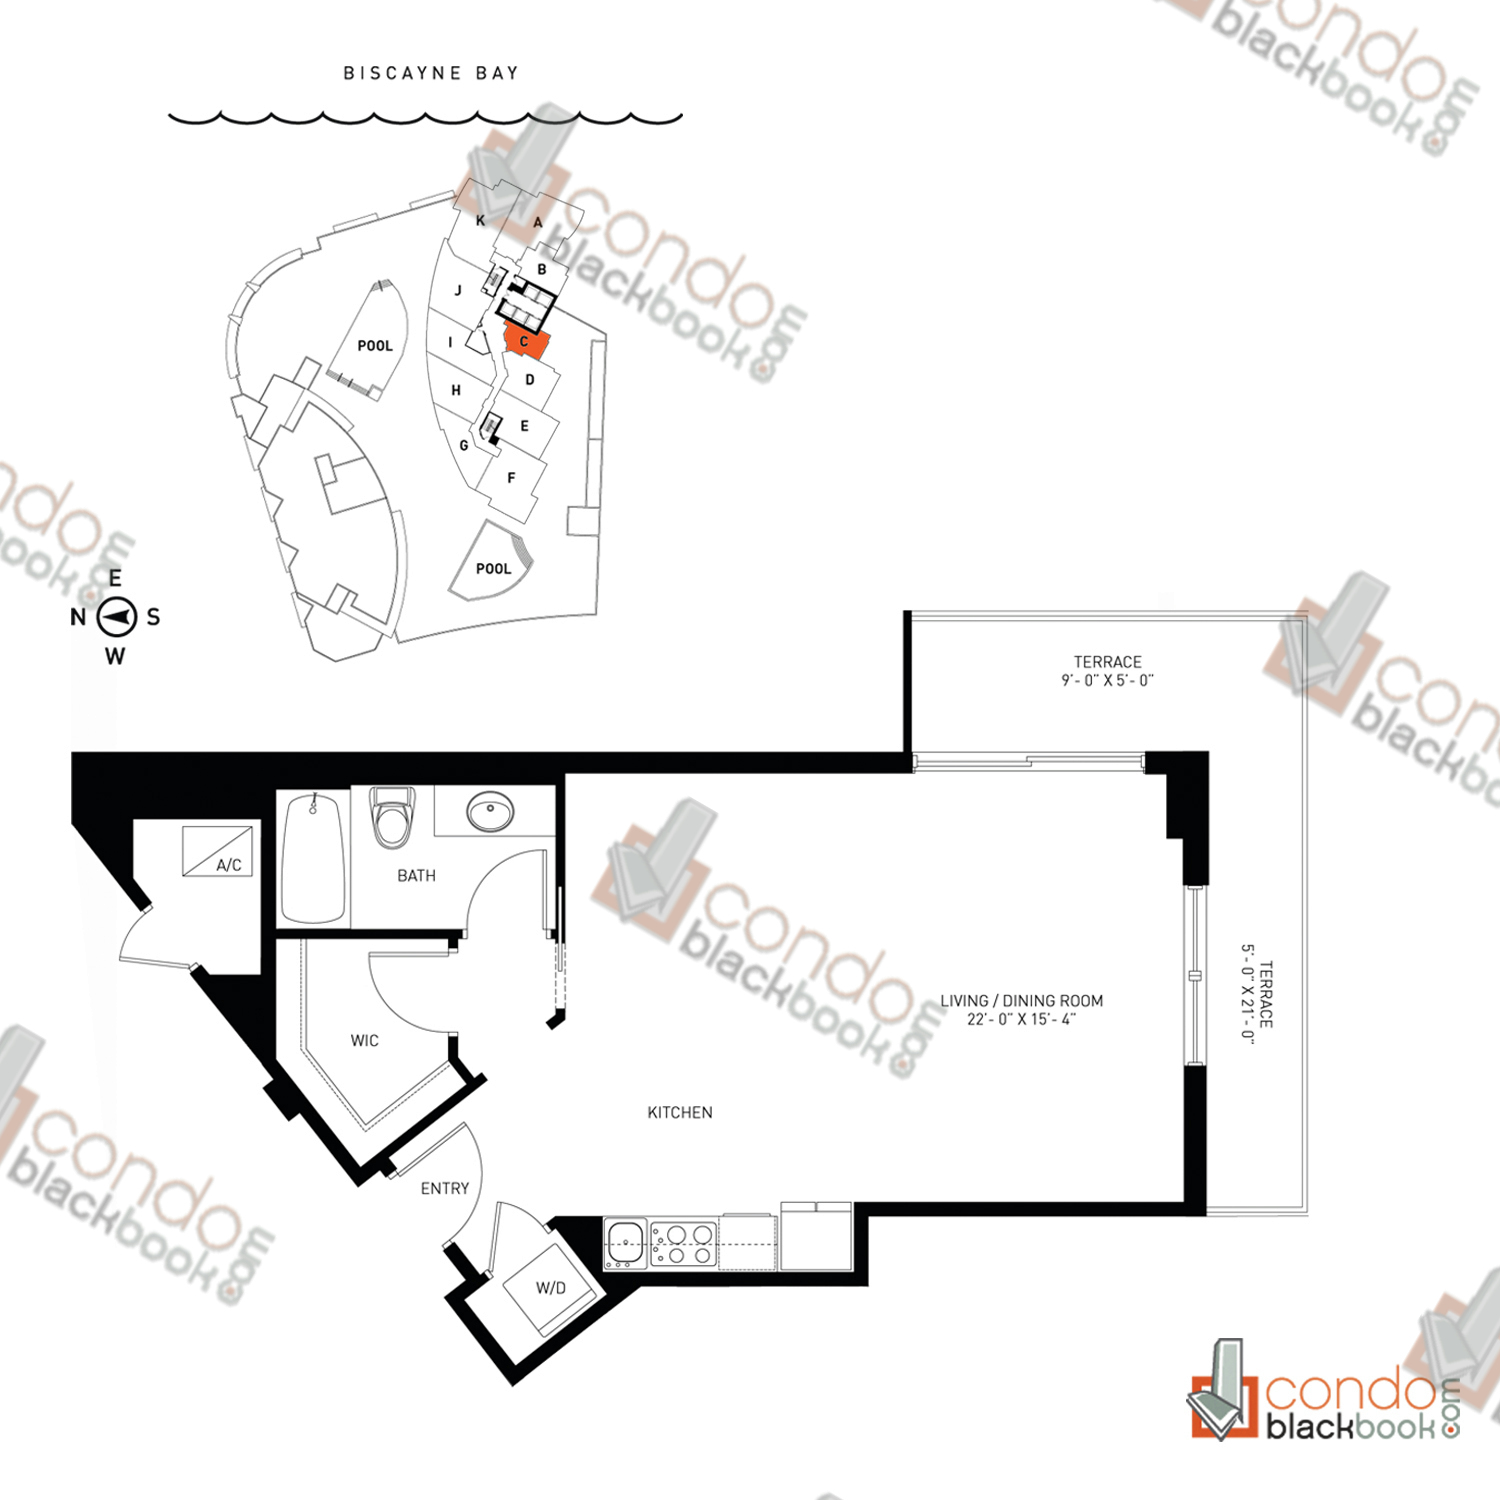 Floor plan for Quantum on the Bay Edgewater Miami, model Residence_C, line South Tower - 05, 0/1 bedrooms, 595 sq ft